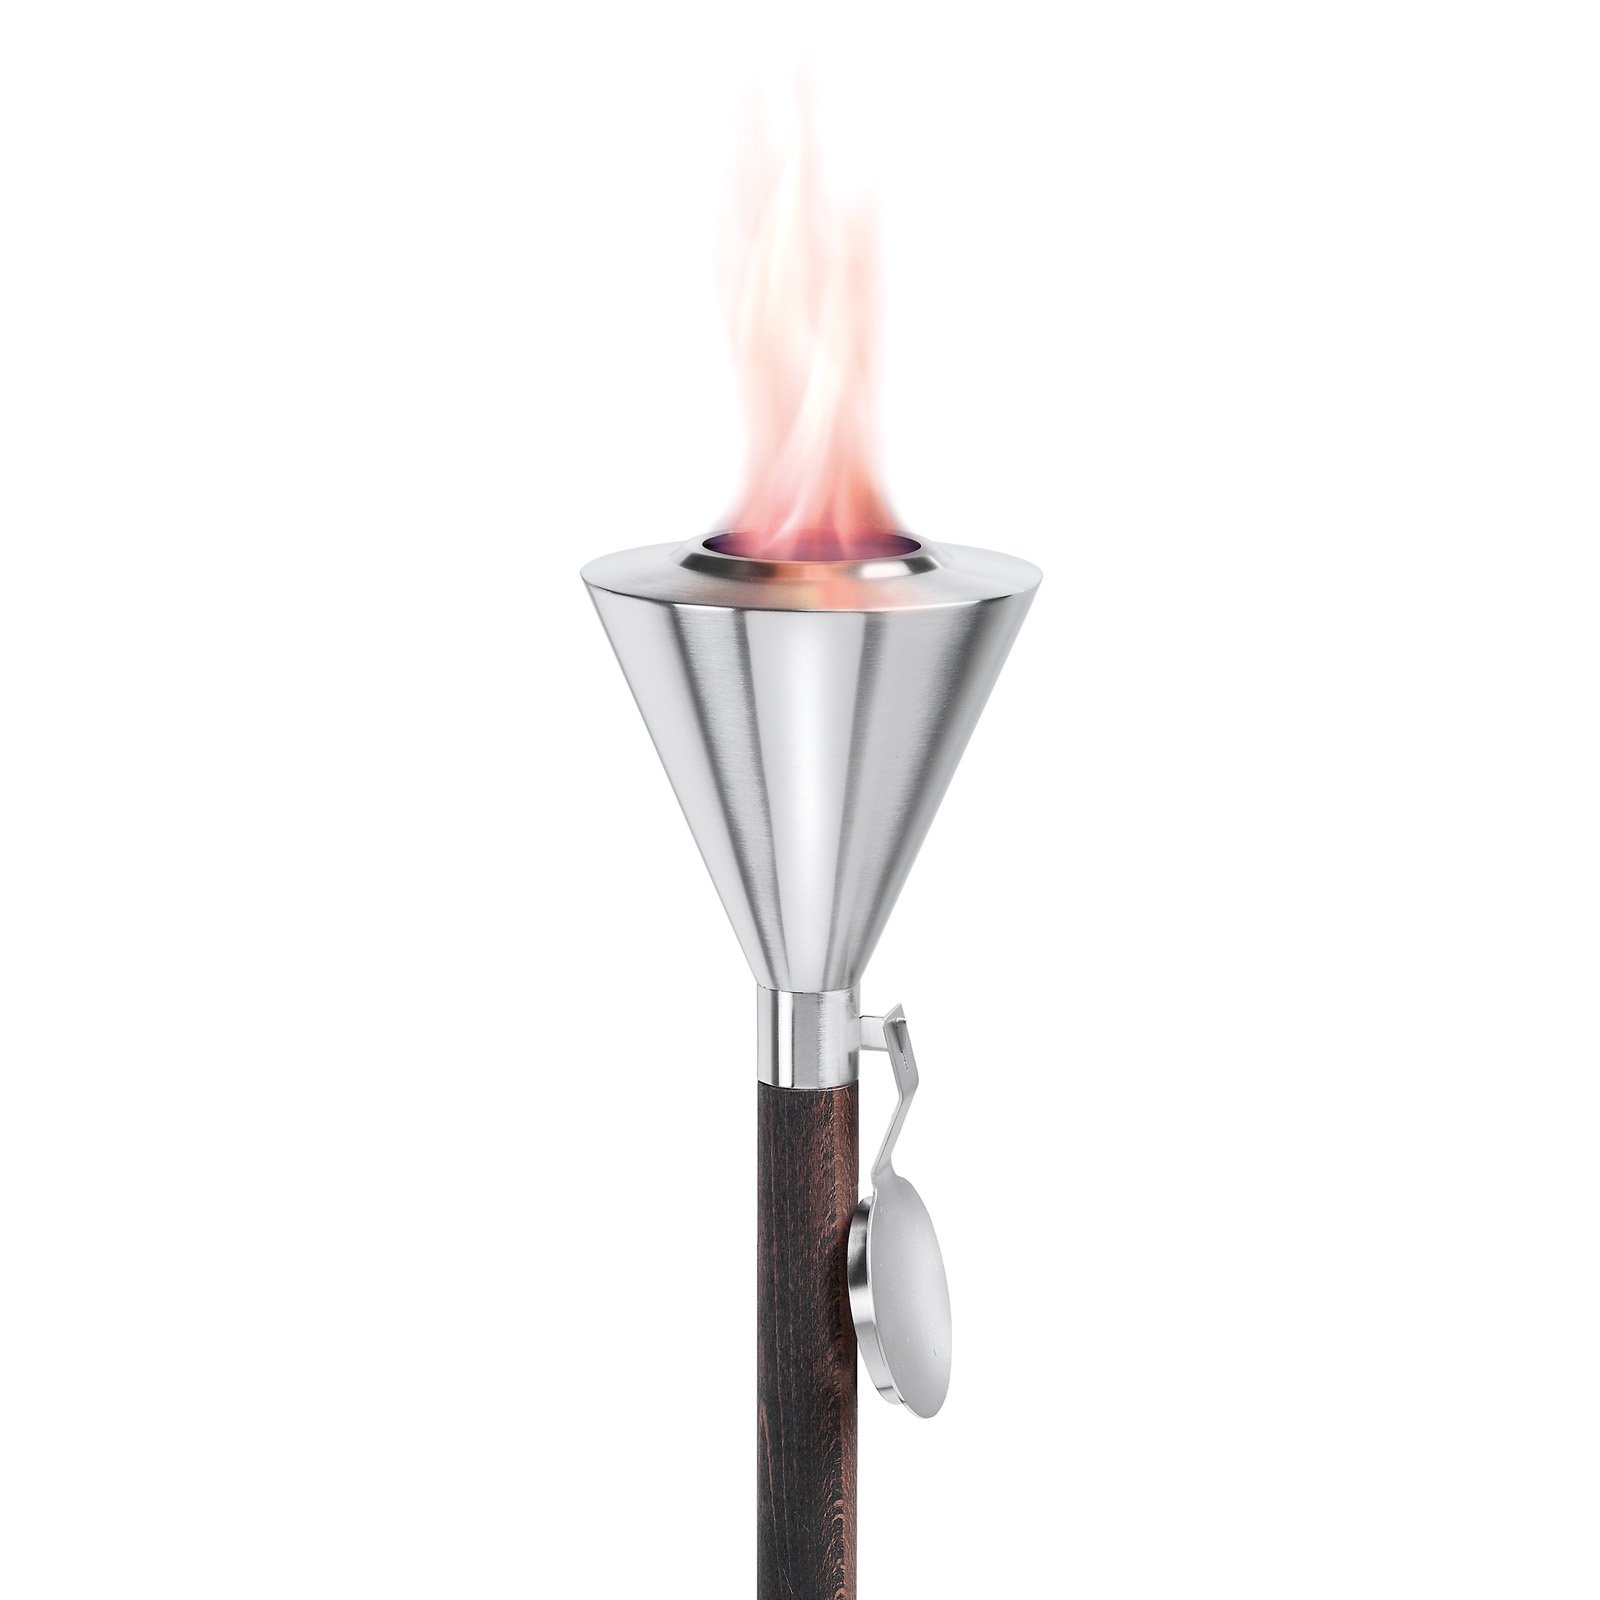 Orchos Wide Garden Torch Stainless Steel & Beechwood 60.25 in. by Blomus